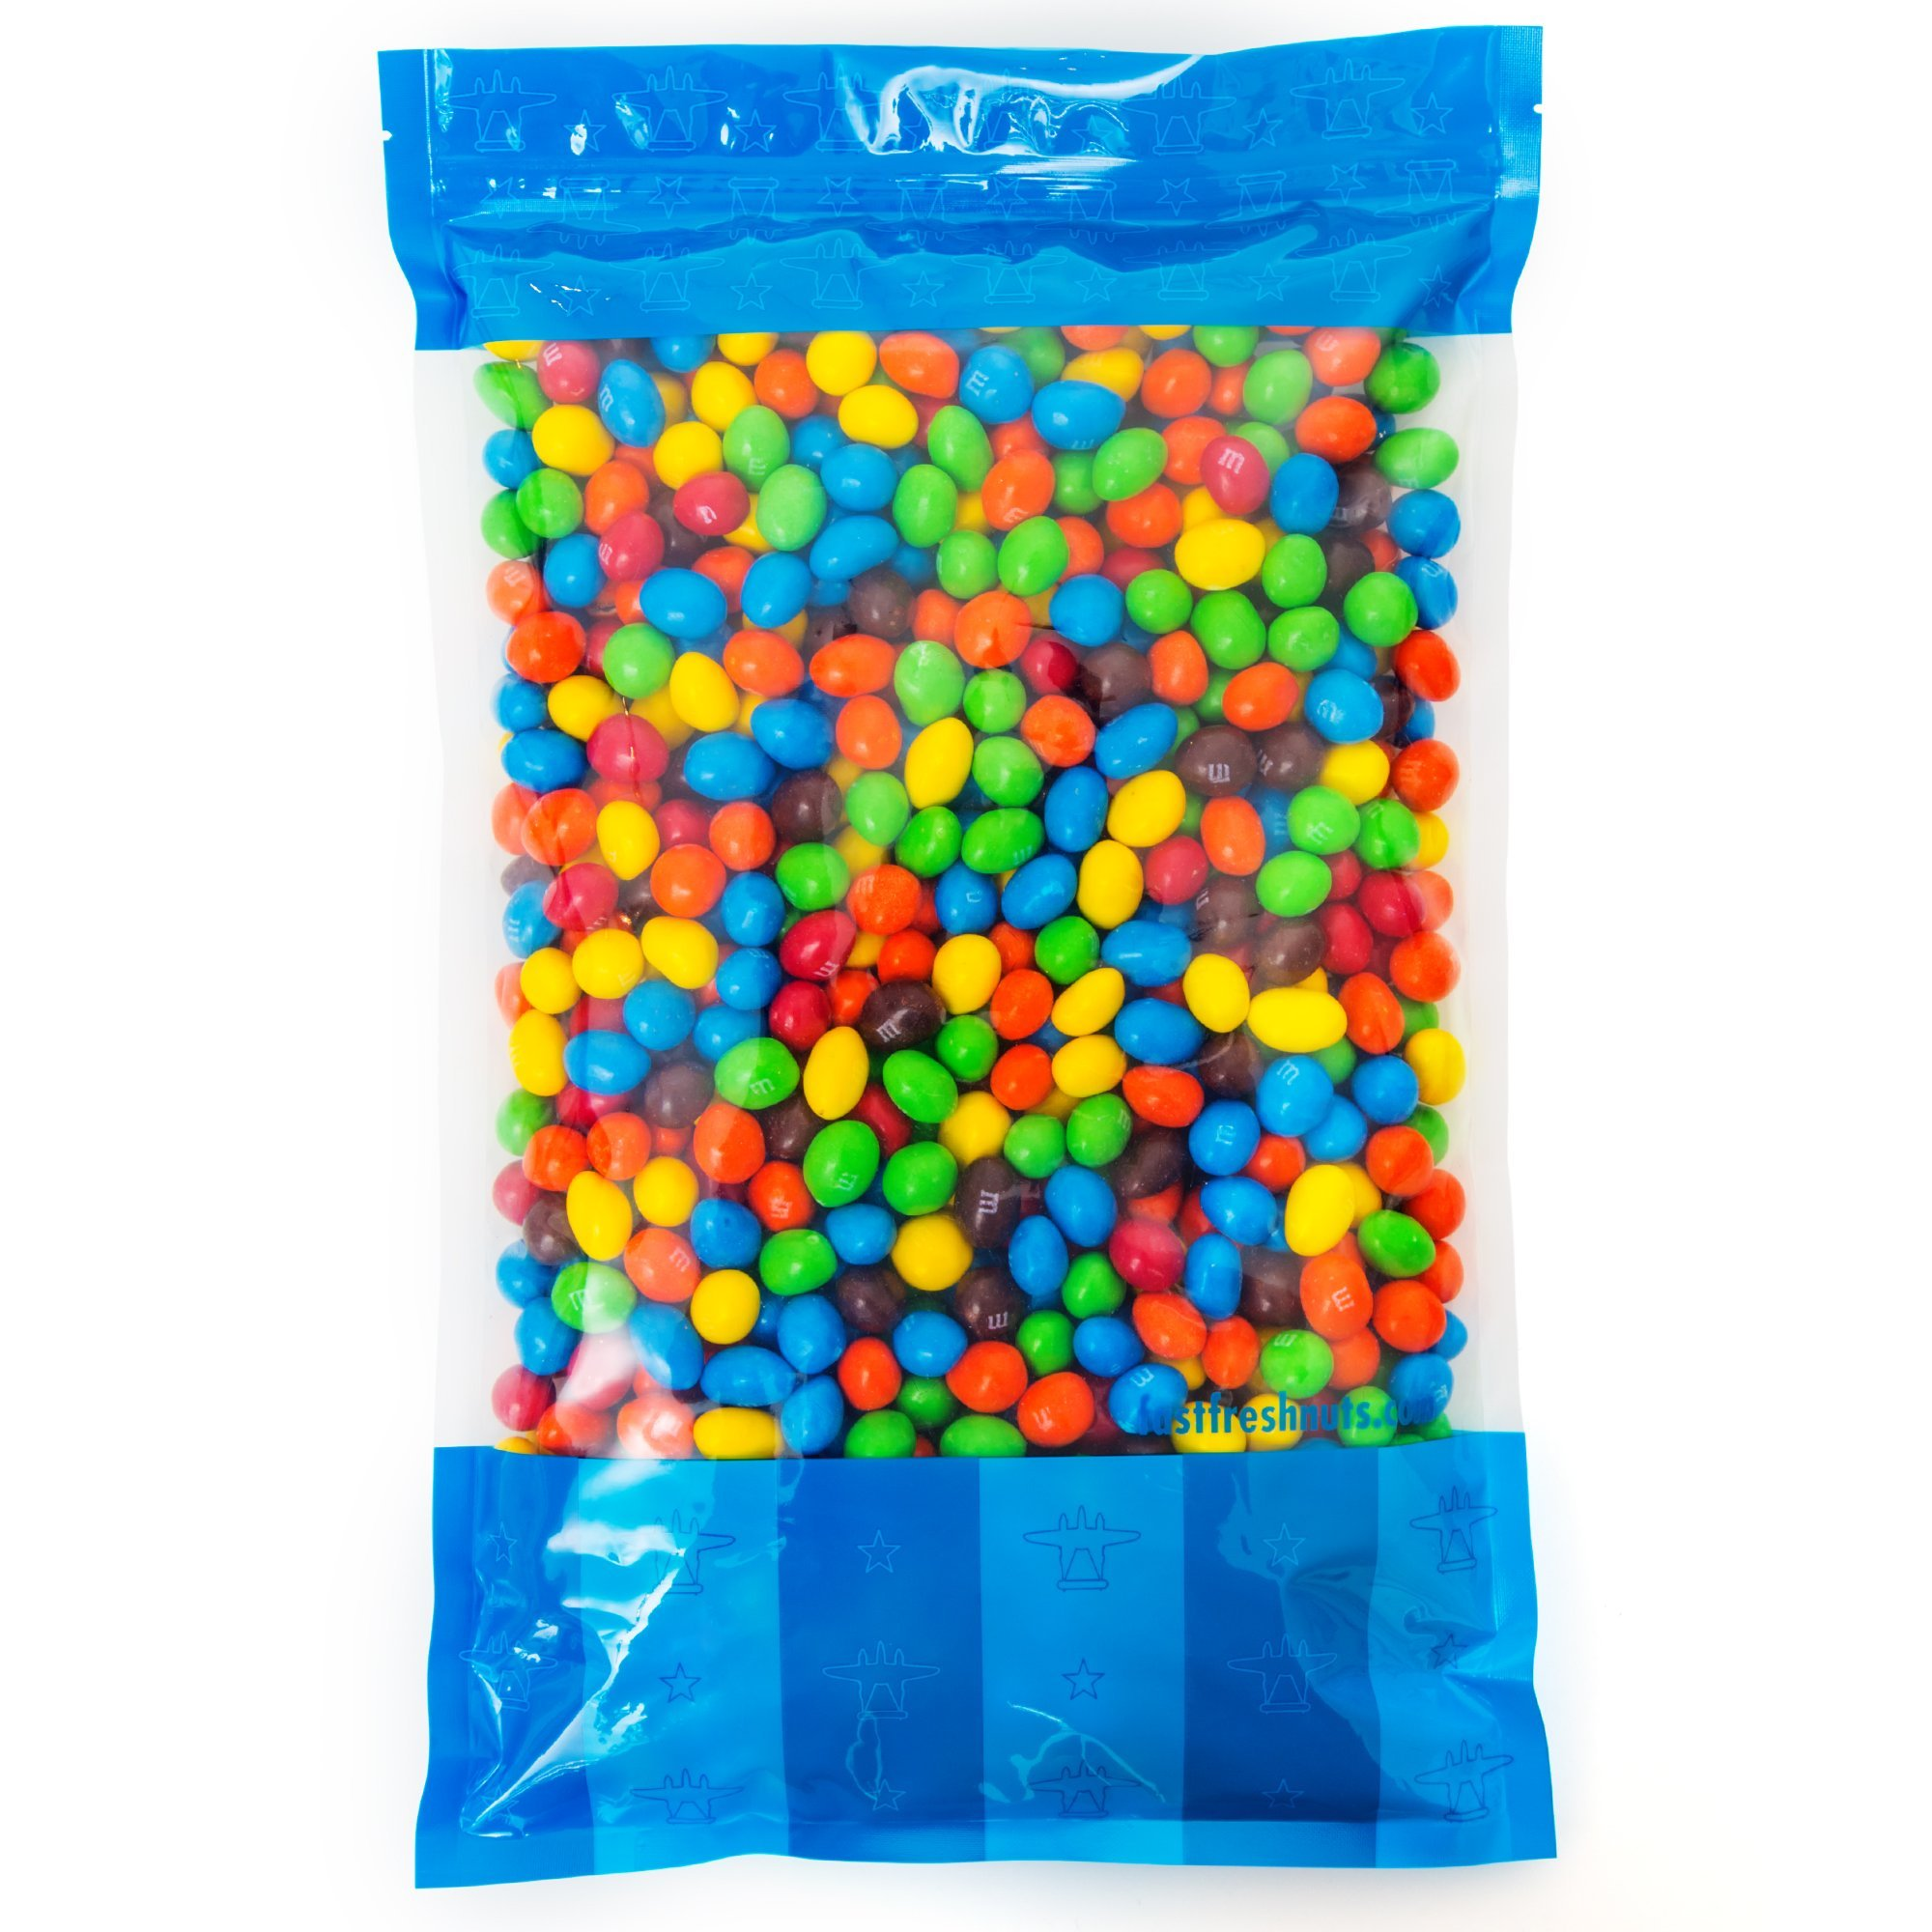 Bulk Peanut M&Ms in Resealable Bomber Bag, Wholesale Chocolate & Peanut Candy (5lb Bag)